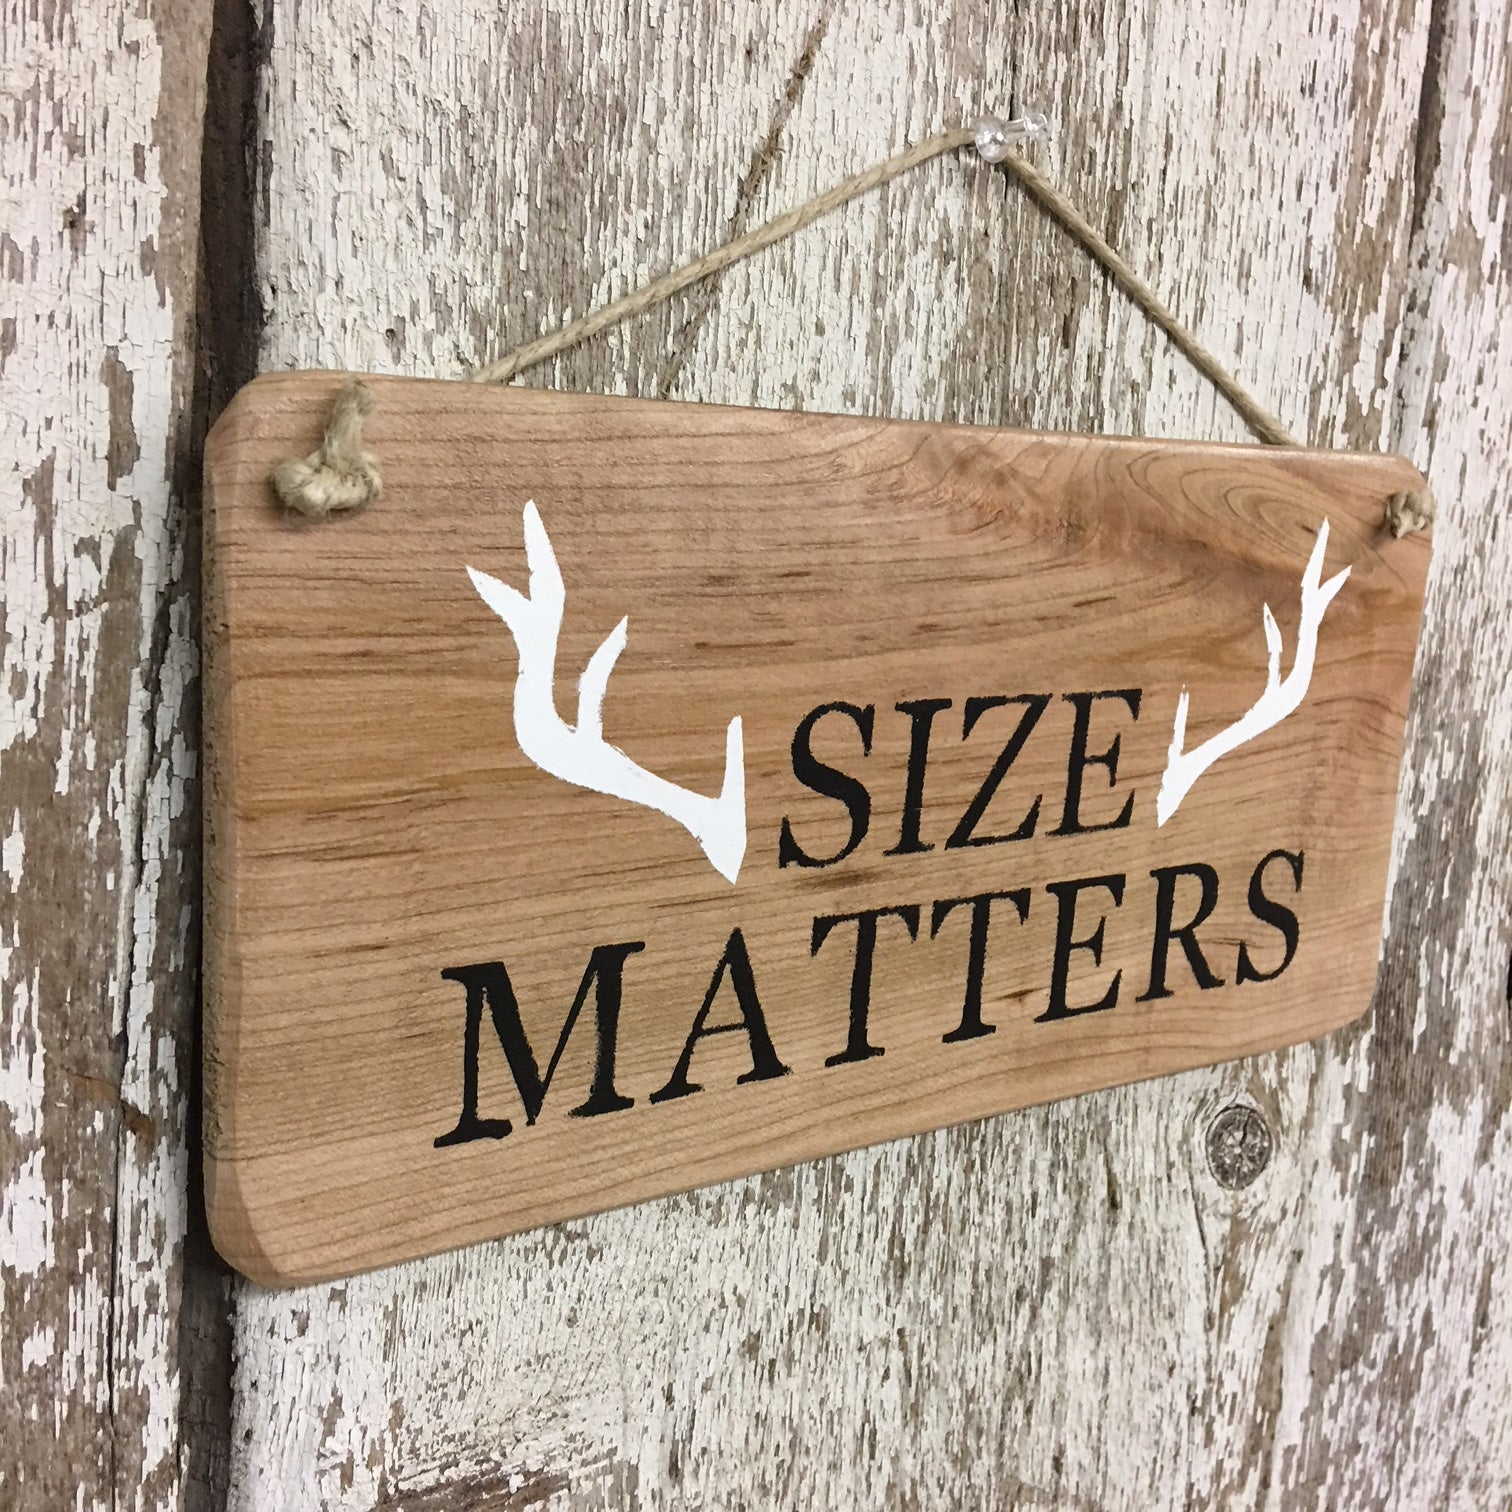 funny hunting signs deer decor size matters reclaimed wood sign